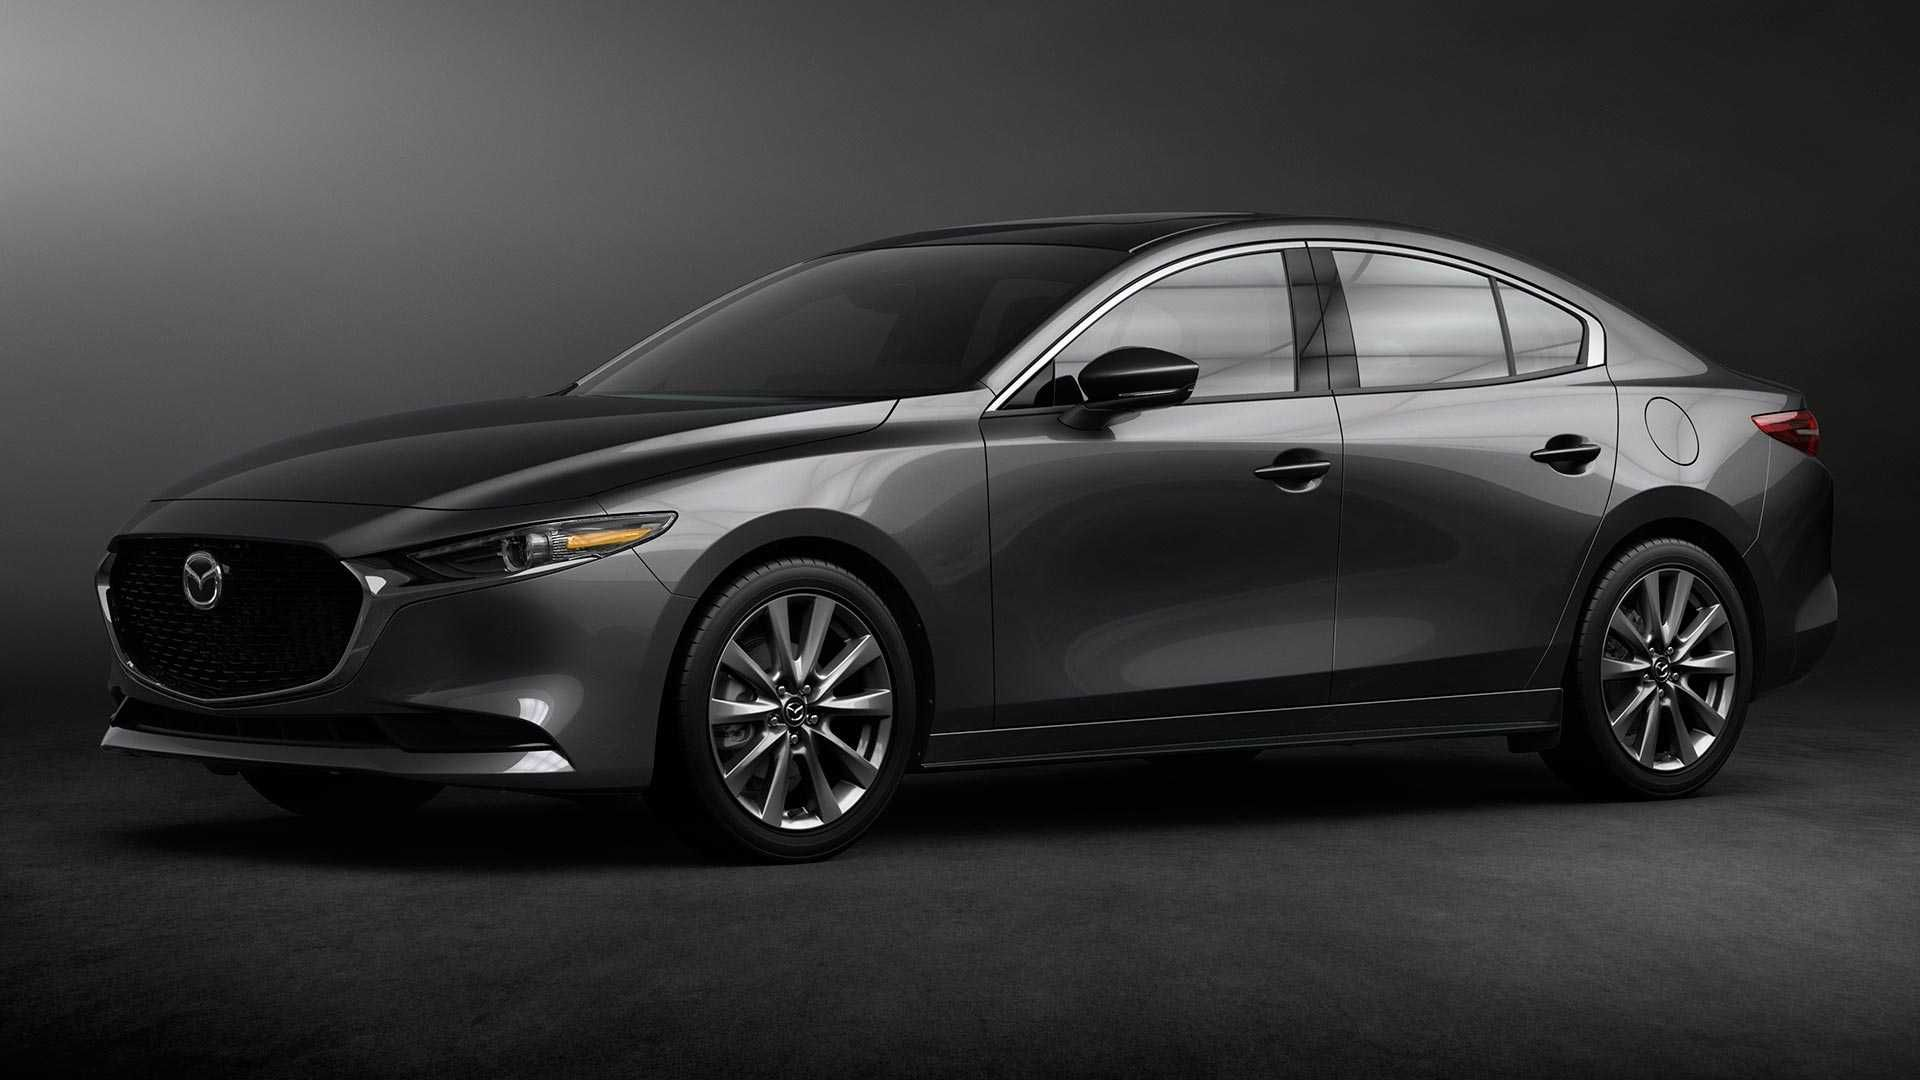 The New Mazda3 Has Been Redesigned From The Ground Up With A Head Turning Design Available All Wheel Drive And The First Applic Con Imagenes Mazda Autos Mazda 3 Mazda Cx5